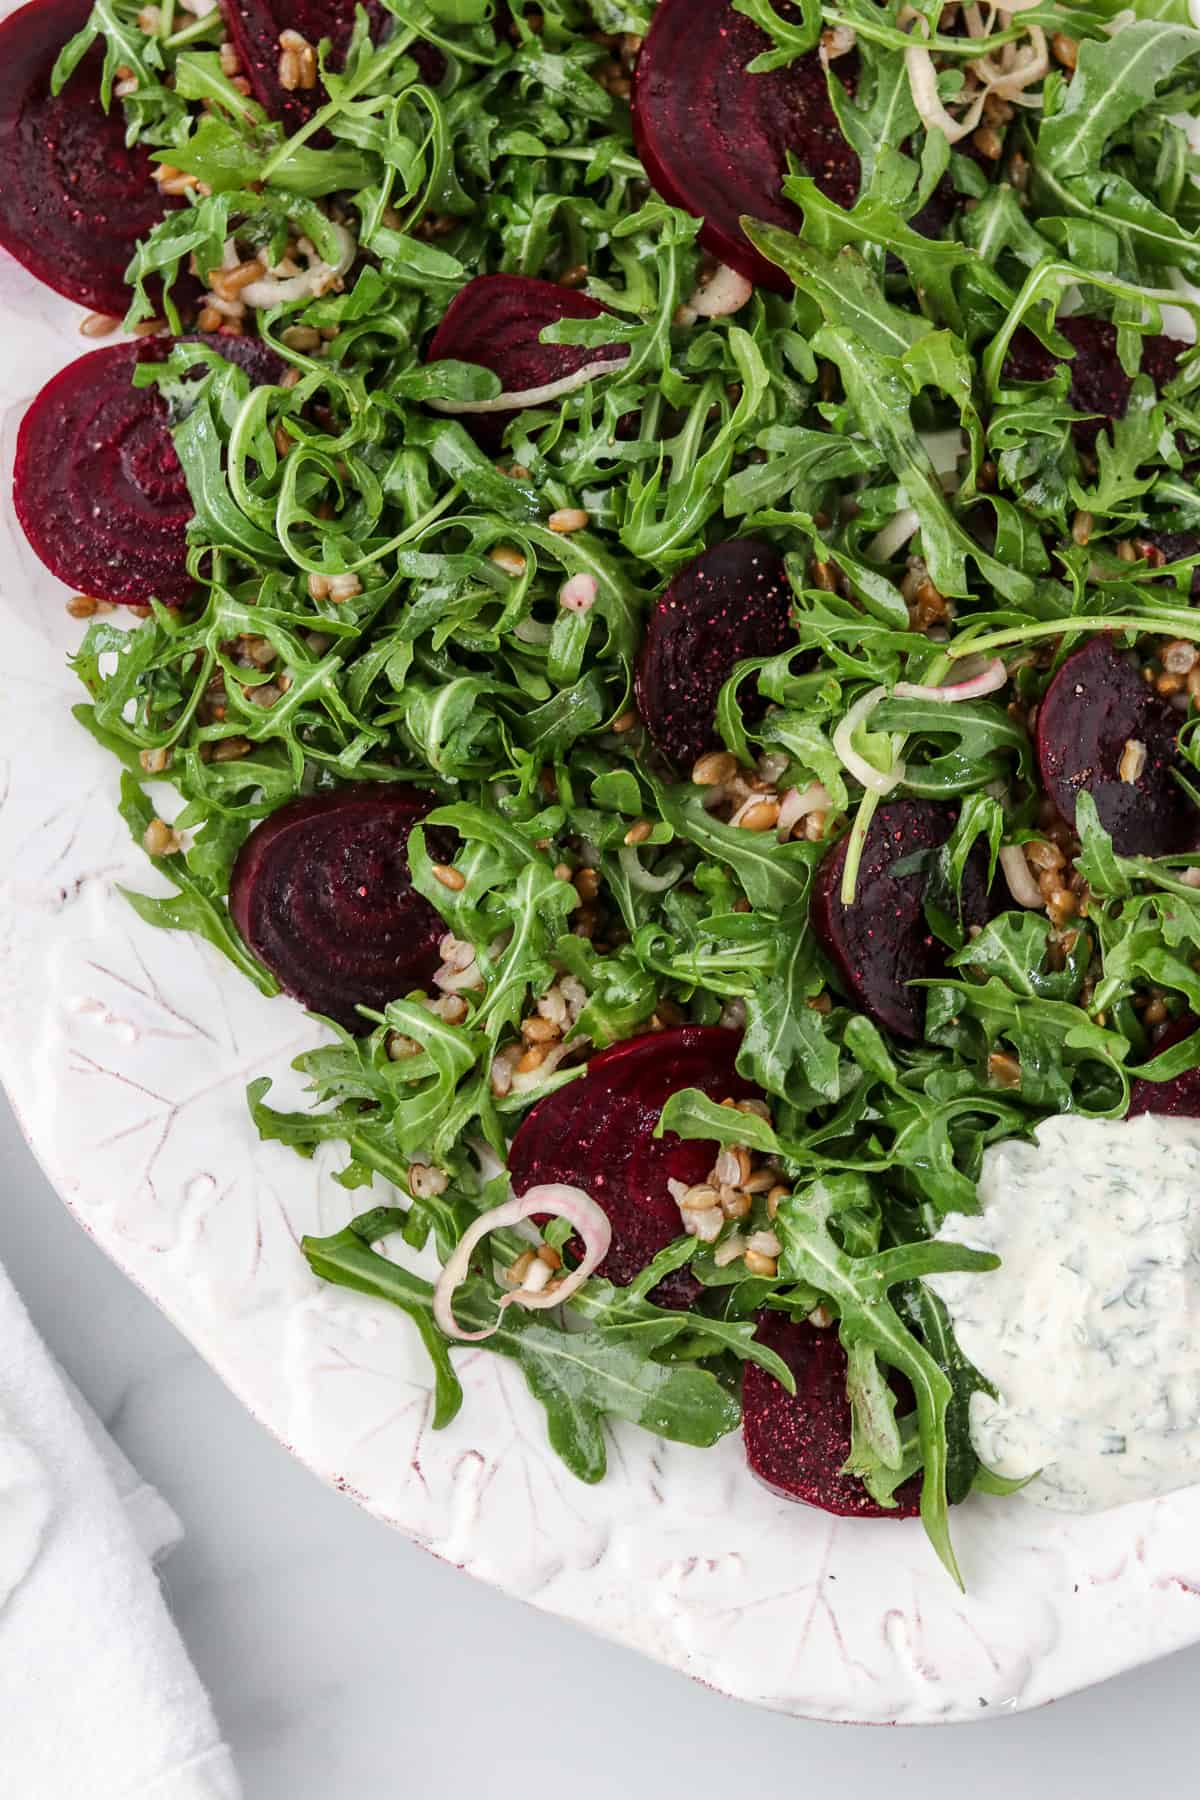 Roasted beet salad on a platter next to a napkin.